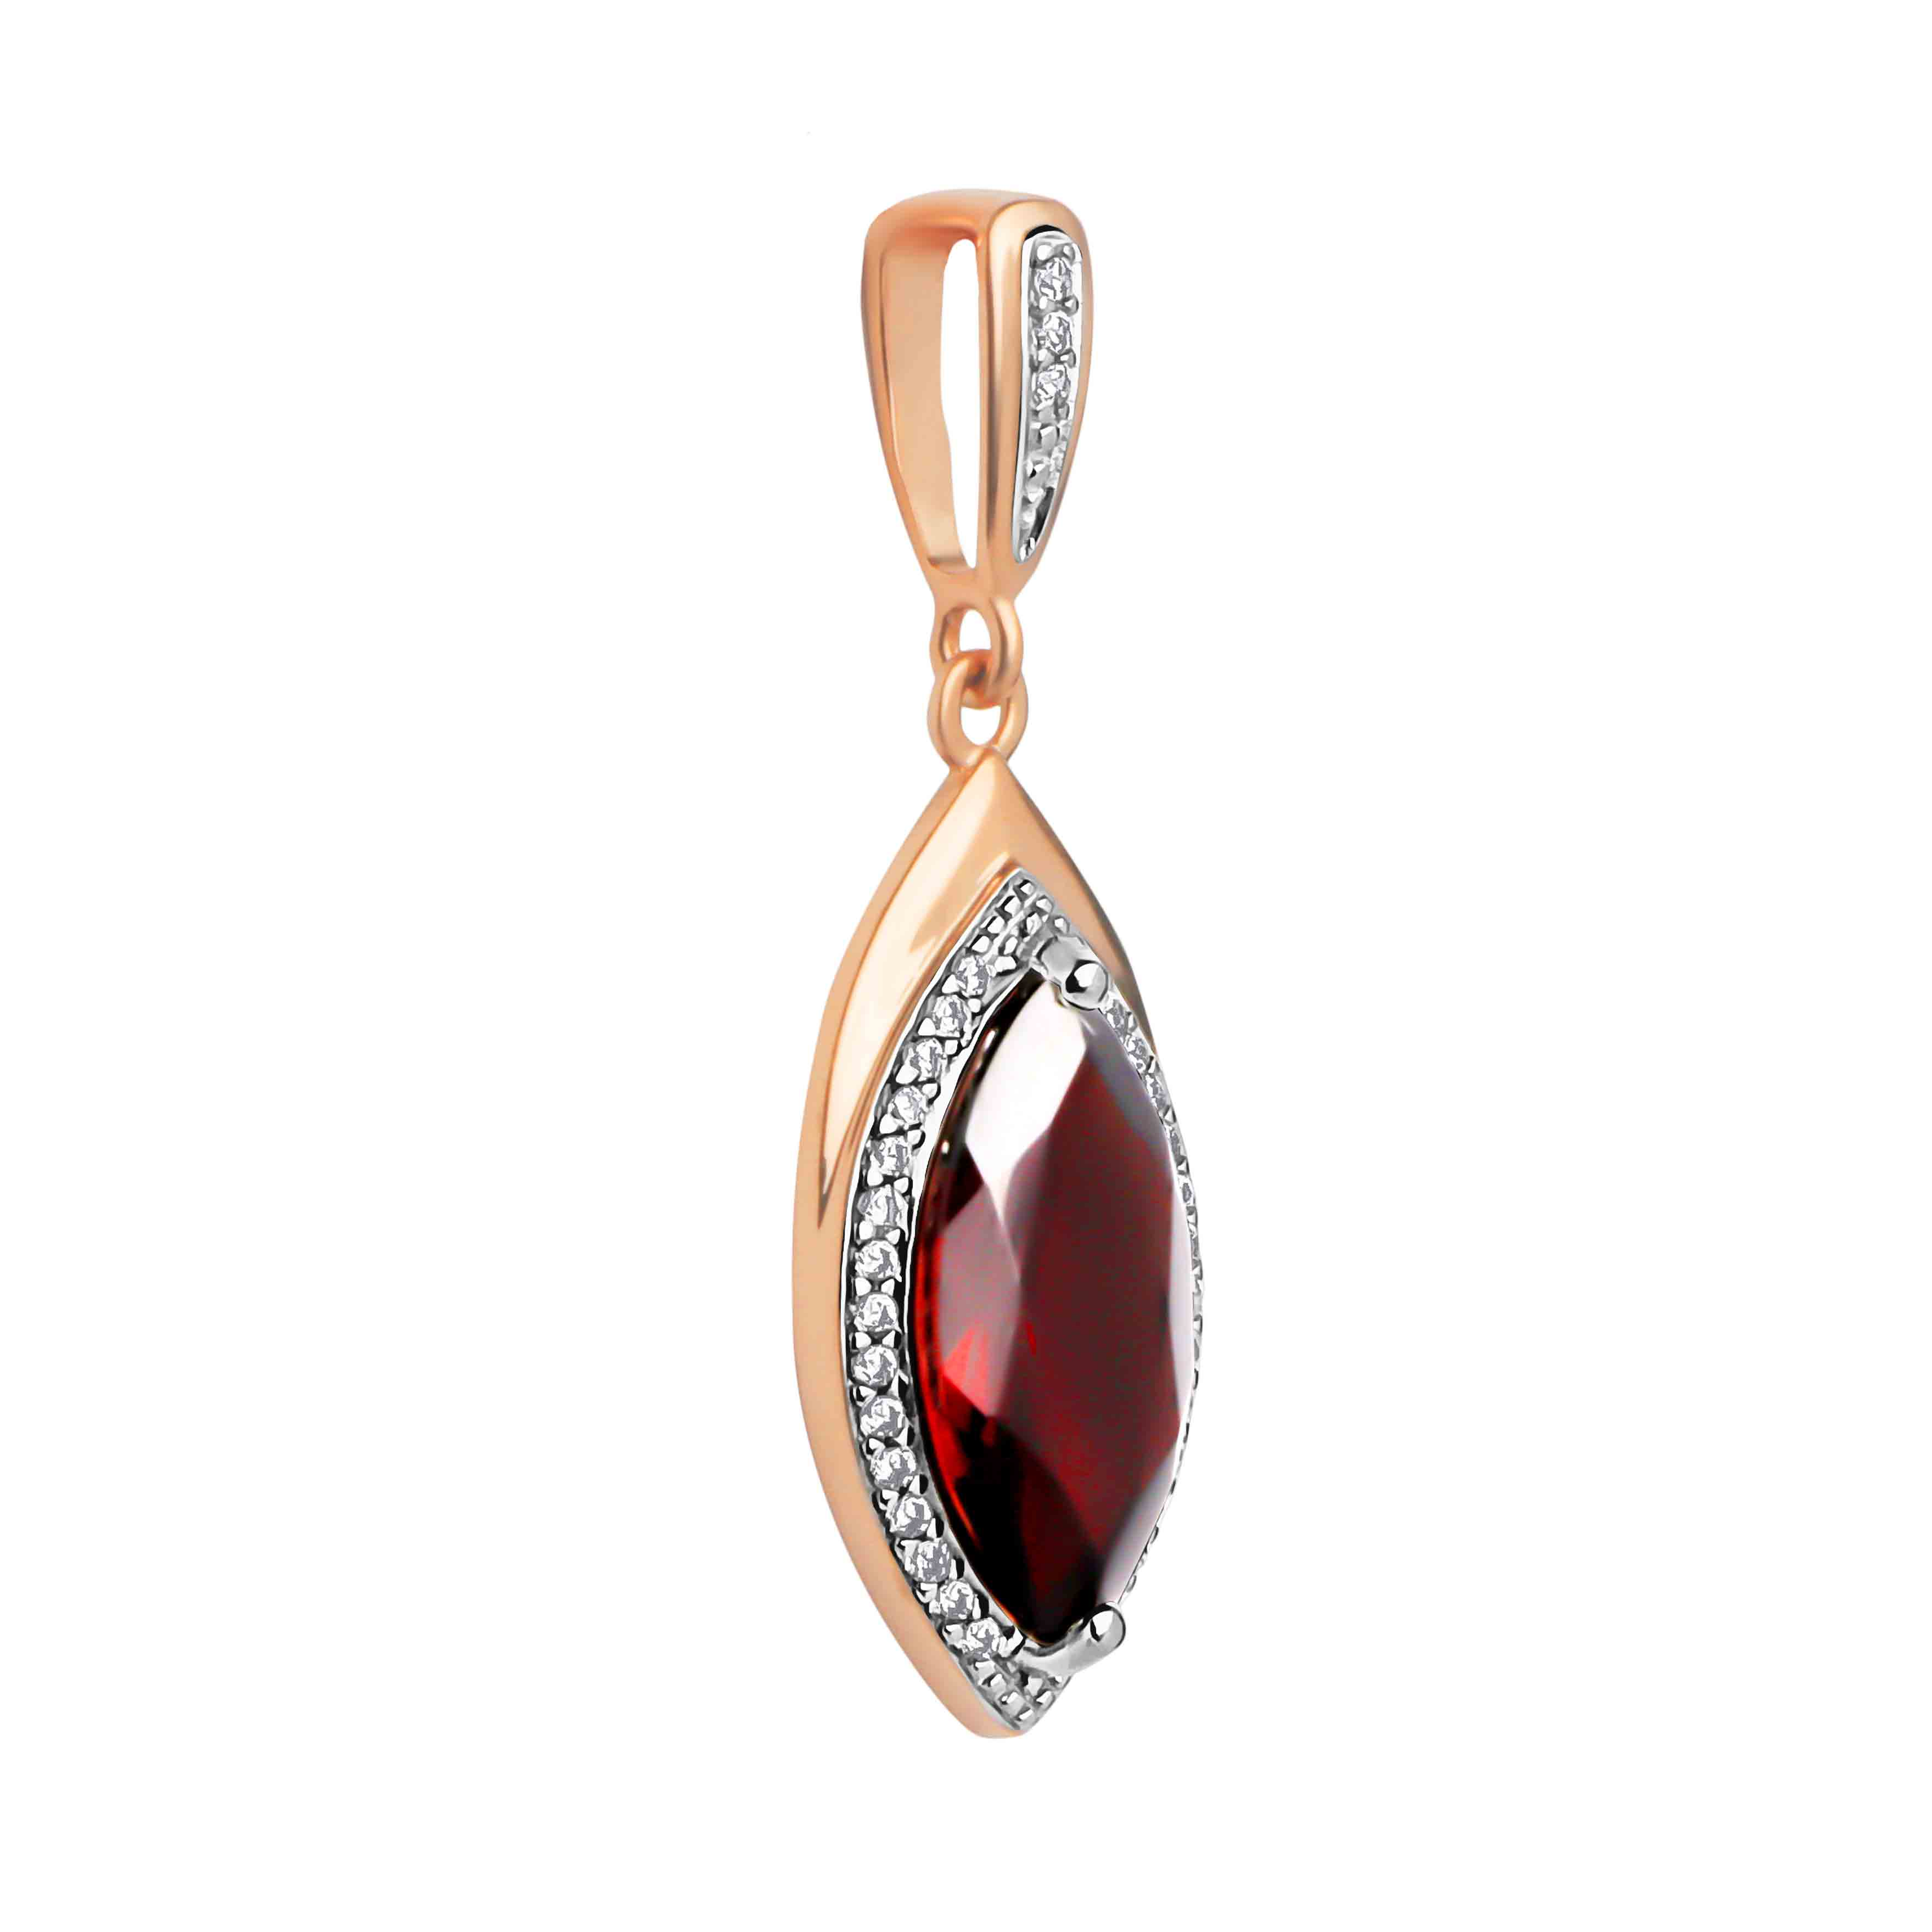 Marquise-shaped Garnet Pendant. 'Empress' Series, 585 Rose Gold. View 2